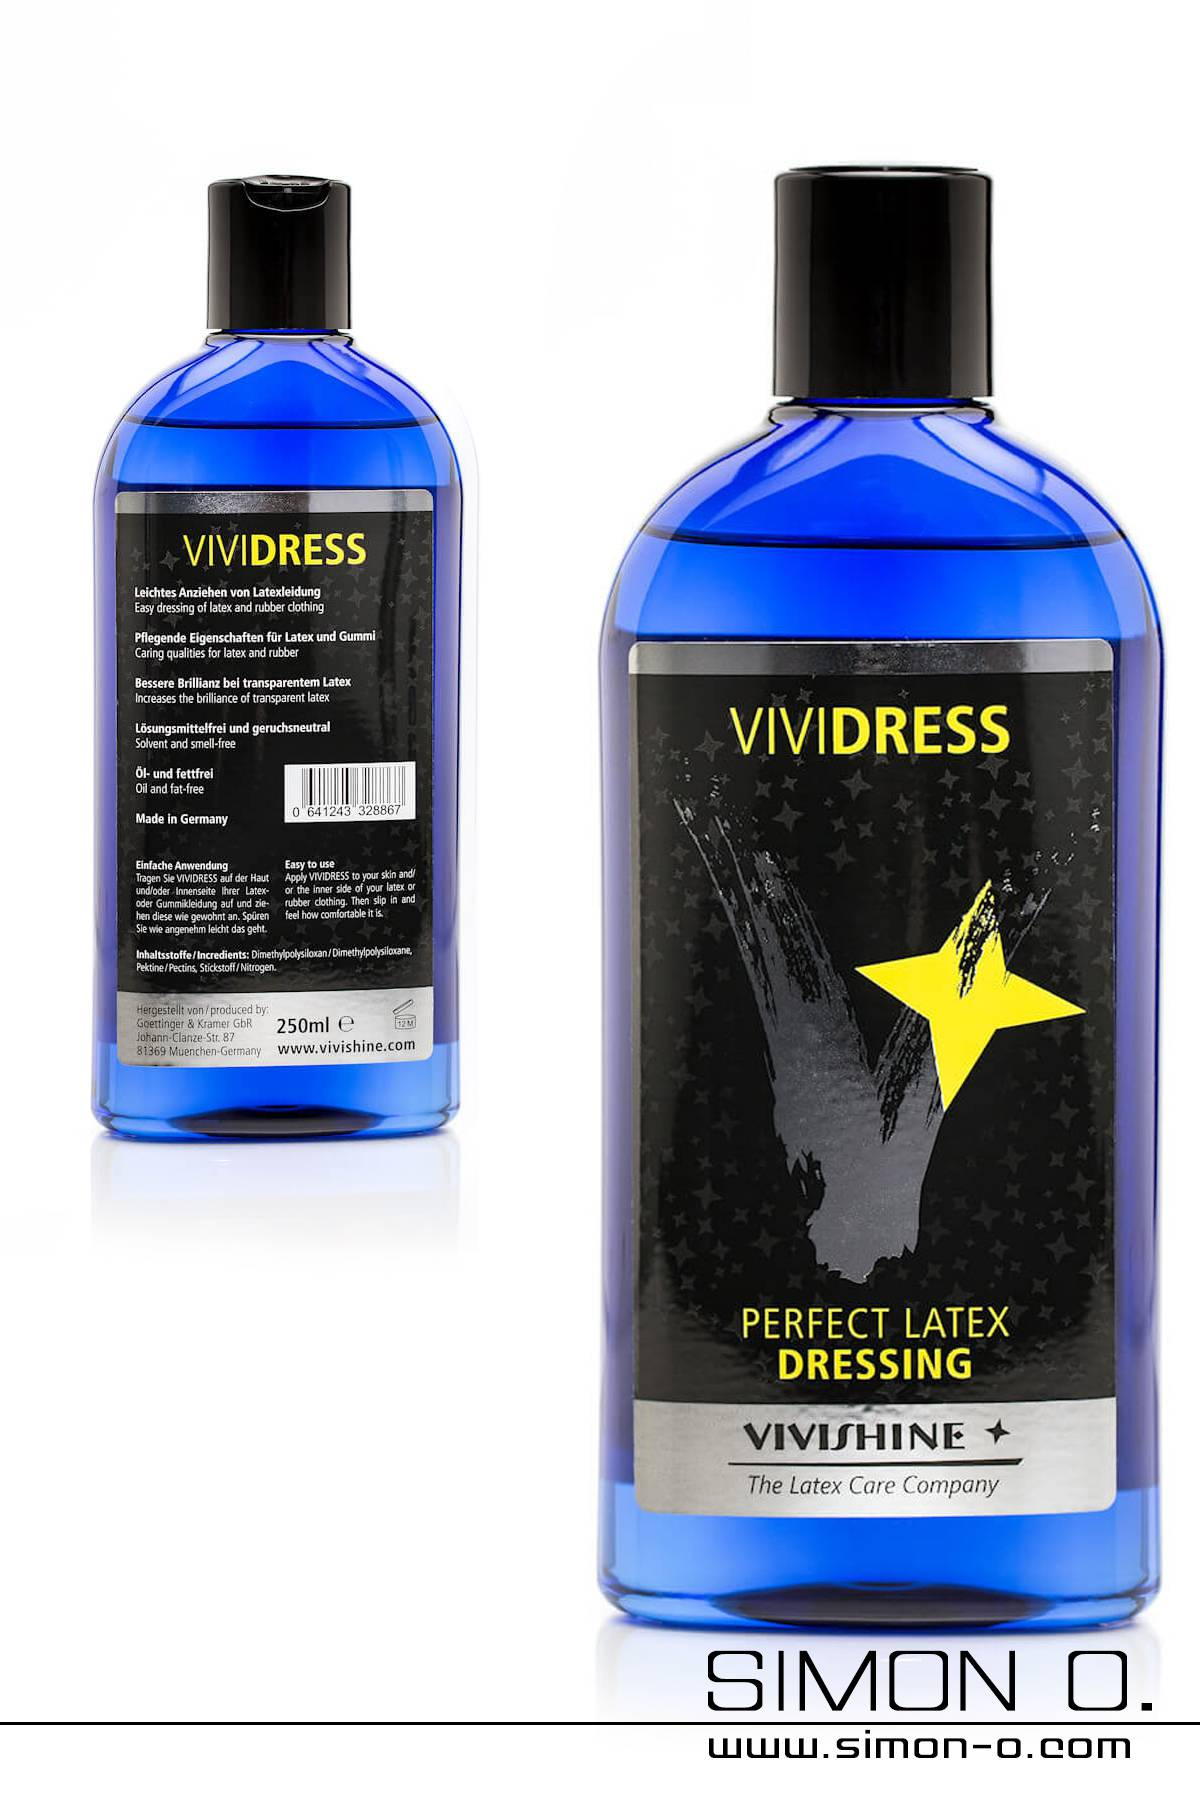 Dressing aid for latex clothing by Vivishine in a blue bottle